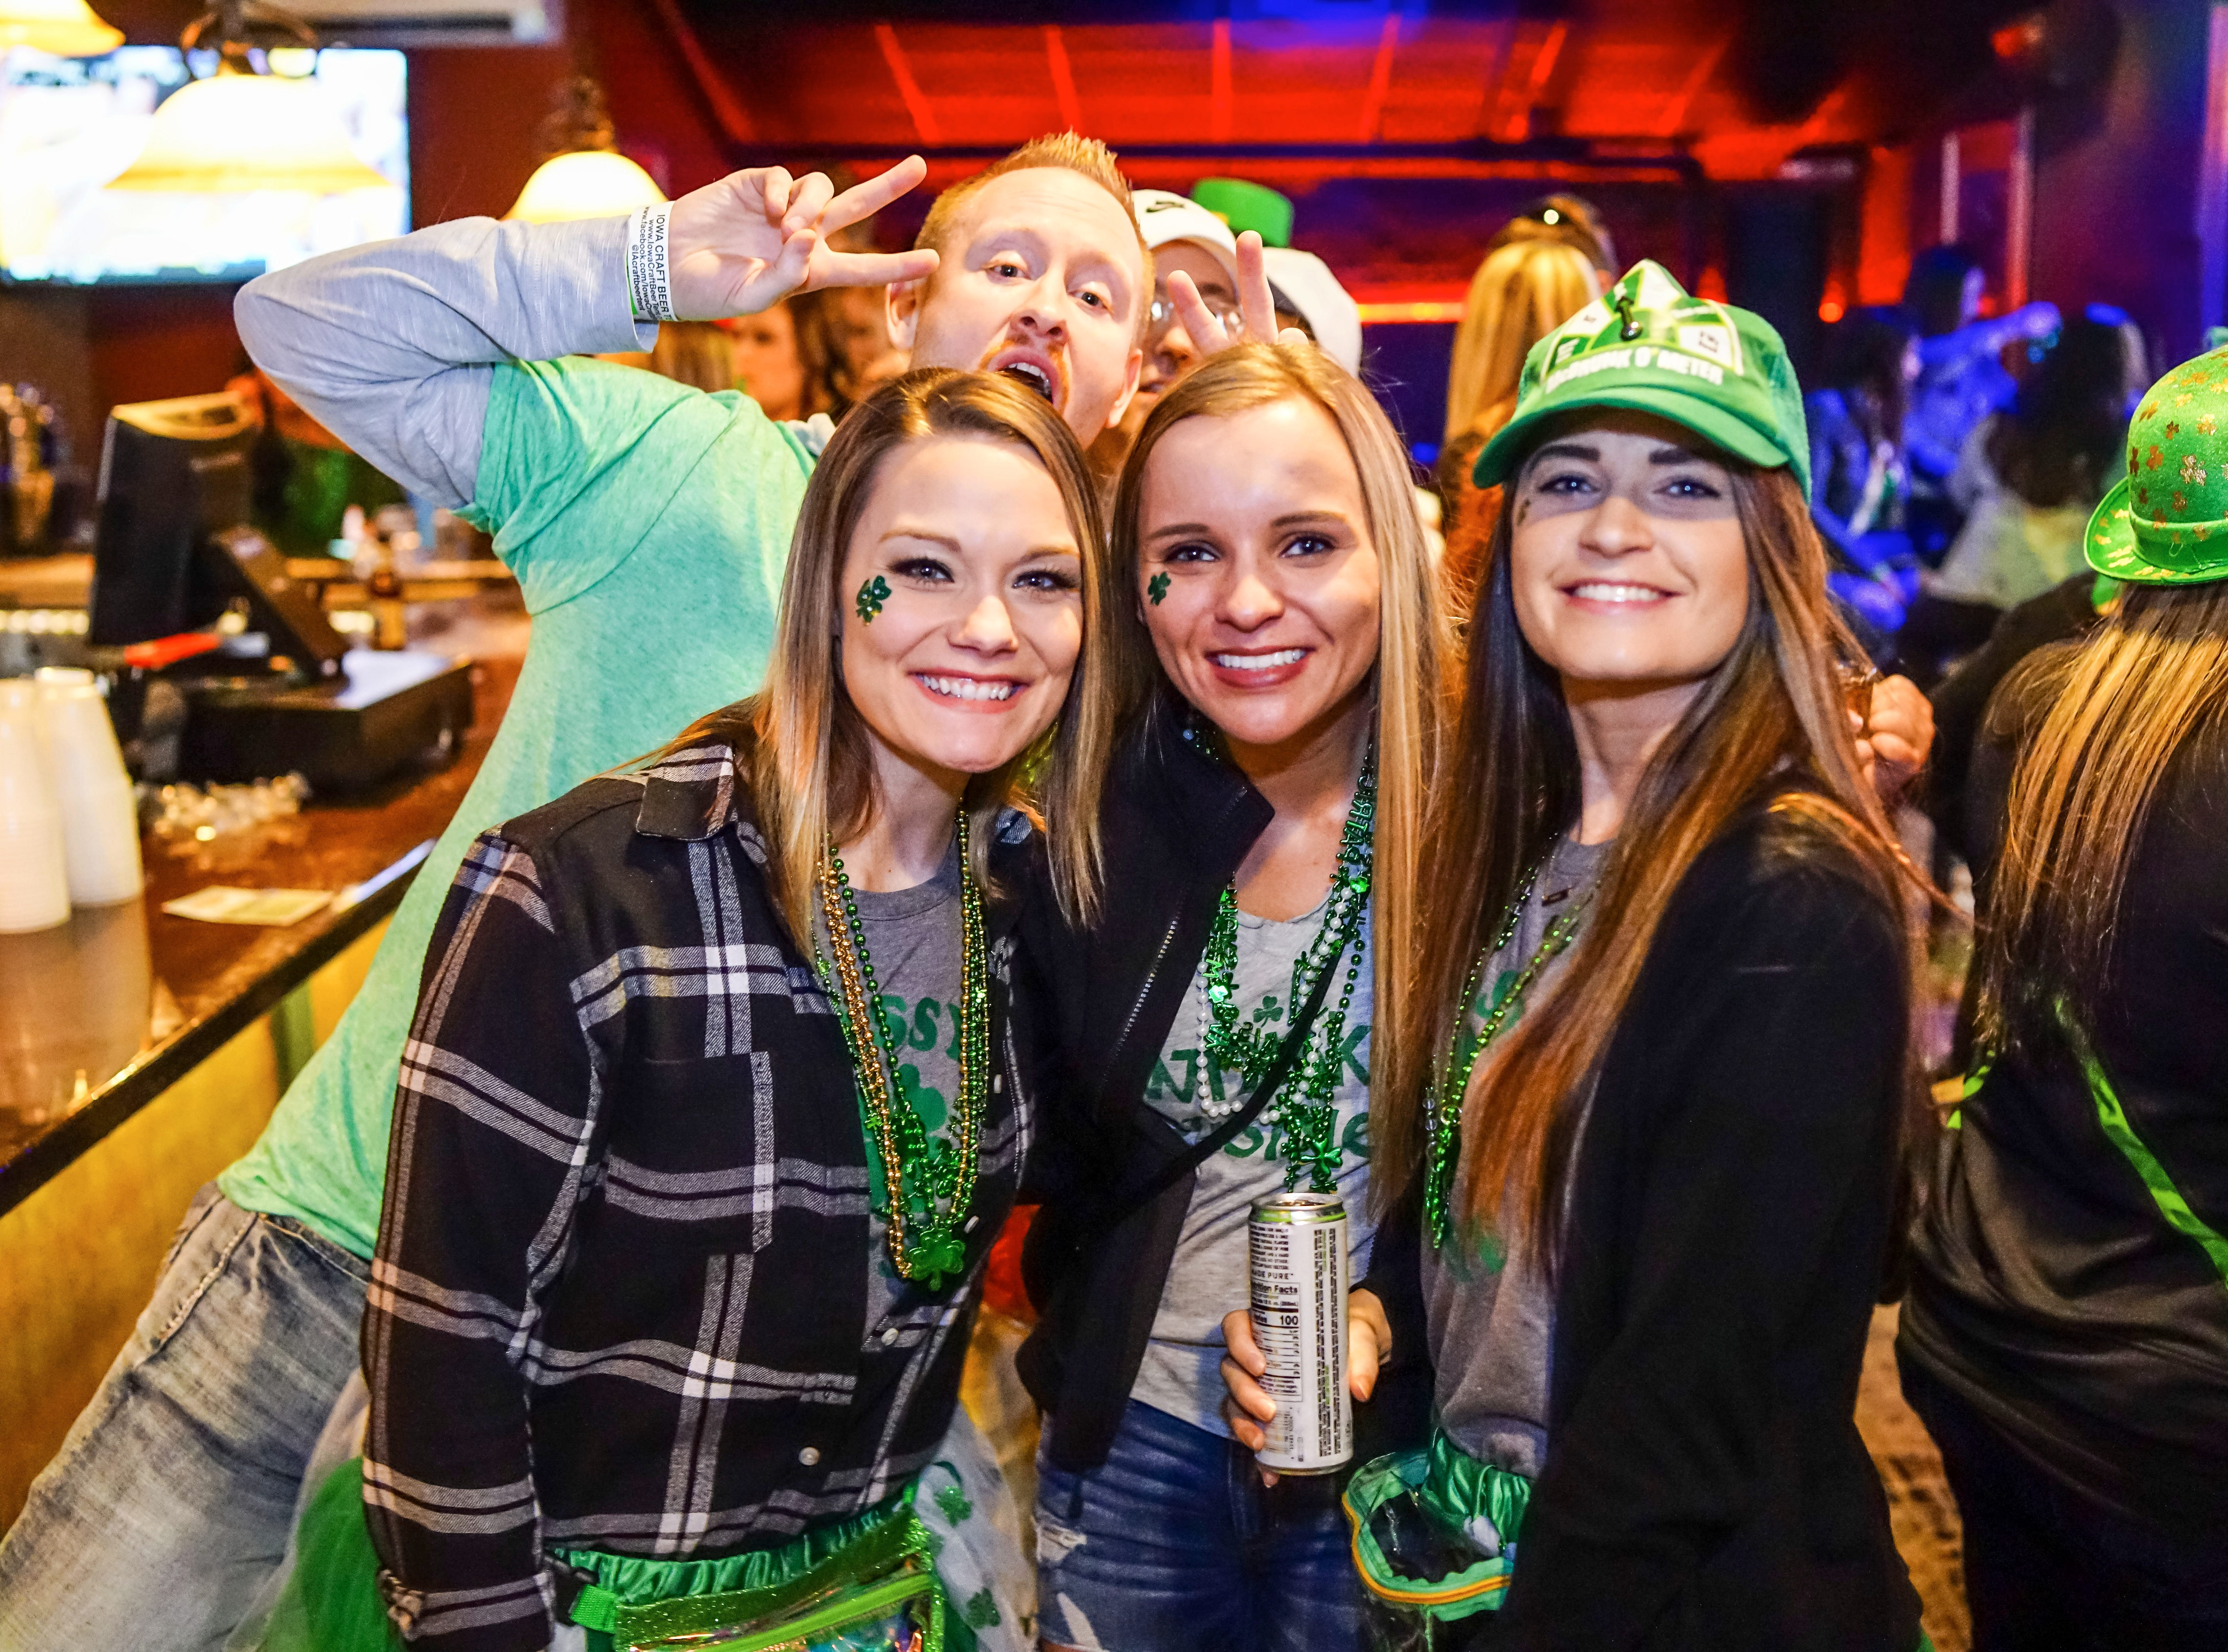 Chloe Barclay, 24, Kayla Steiter, 22, Jessica McGuire, 28, and Blake Frank, 31, all of Des Moines, having a great time, Saturday, March 16, 2019, at Voodoo Lounge.